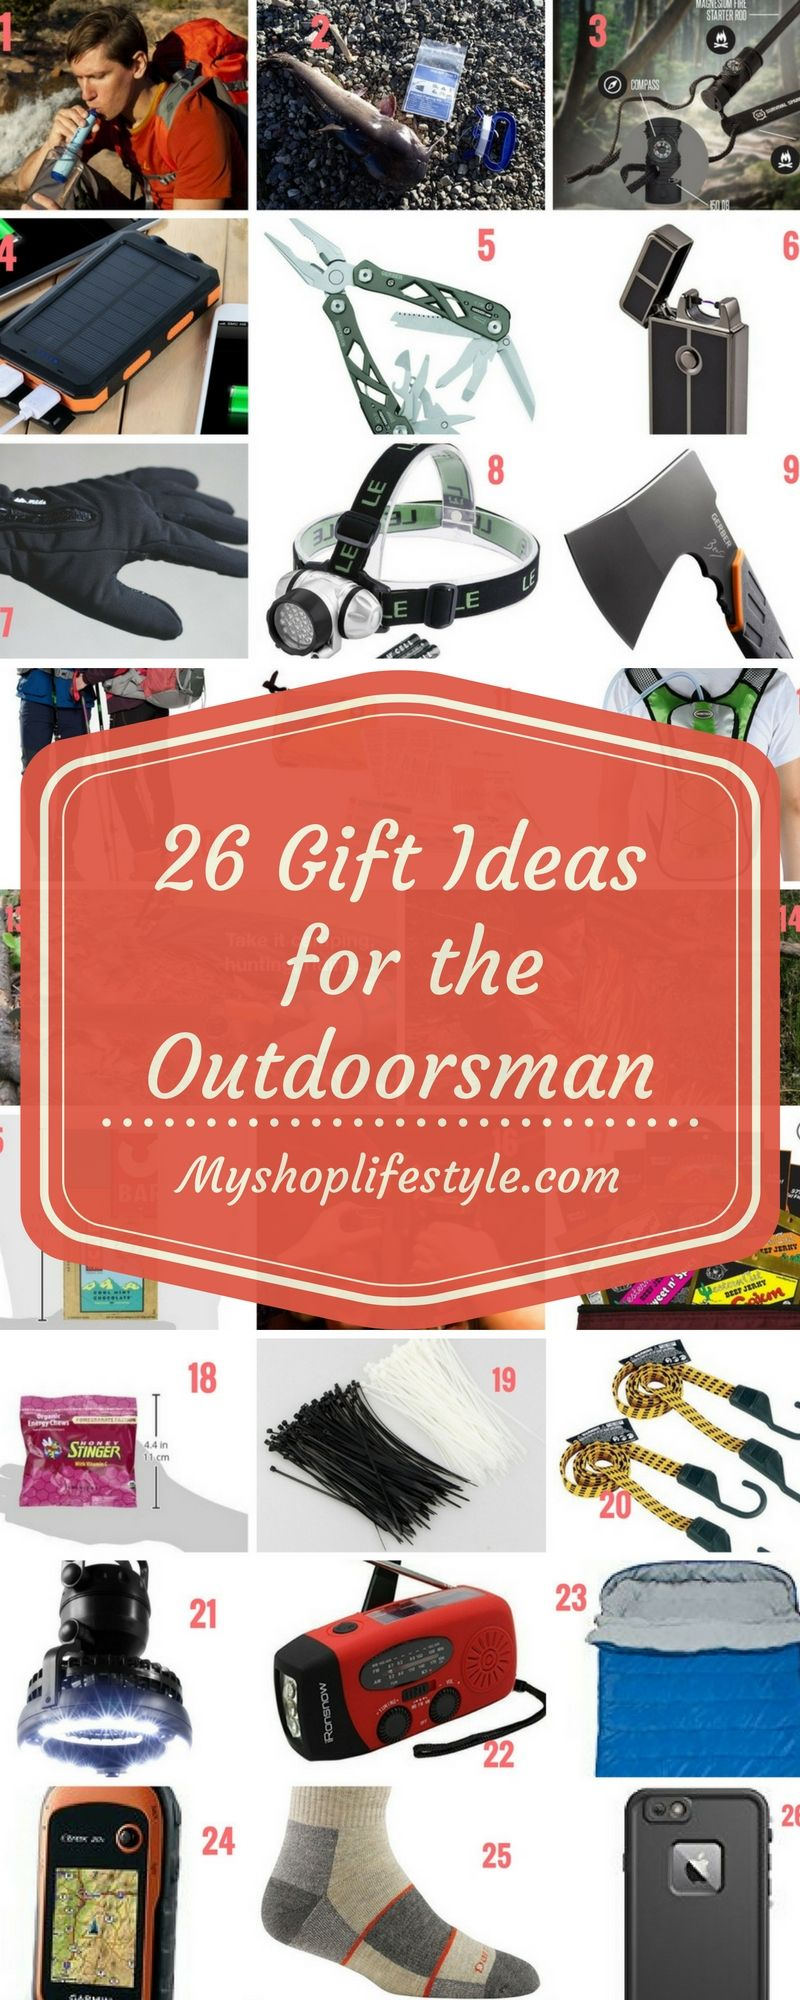 Christmas Gift Ideas For Outdoorsmen Part - 37: These Are Great Gift Ideas For The Outdoorsman Who Loves To Camp And Hike!  Here